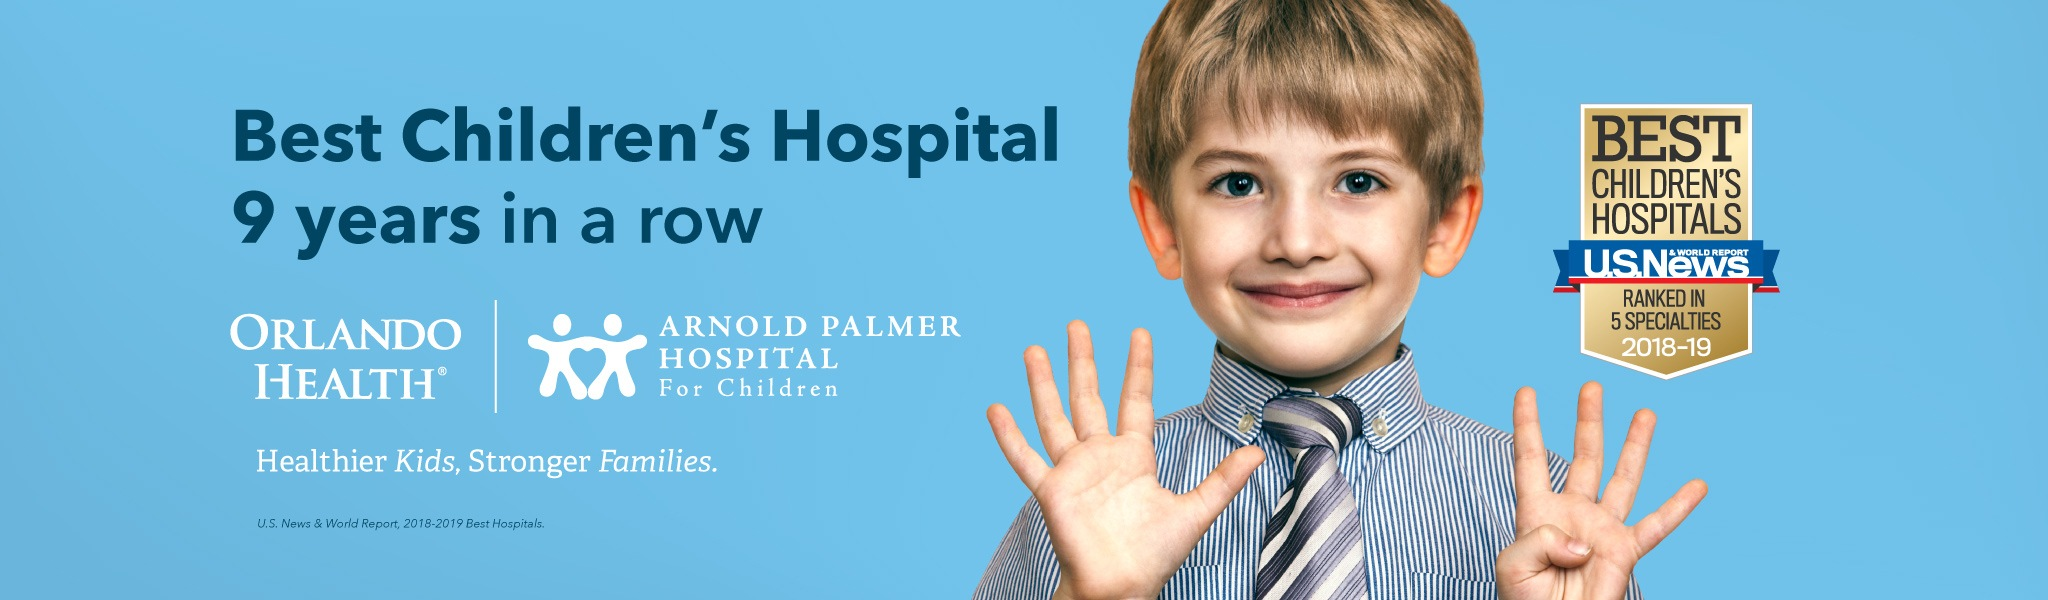 Best Children's Hospital 9 Years in a Row